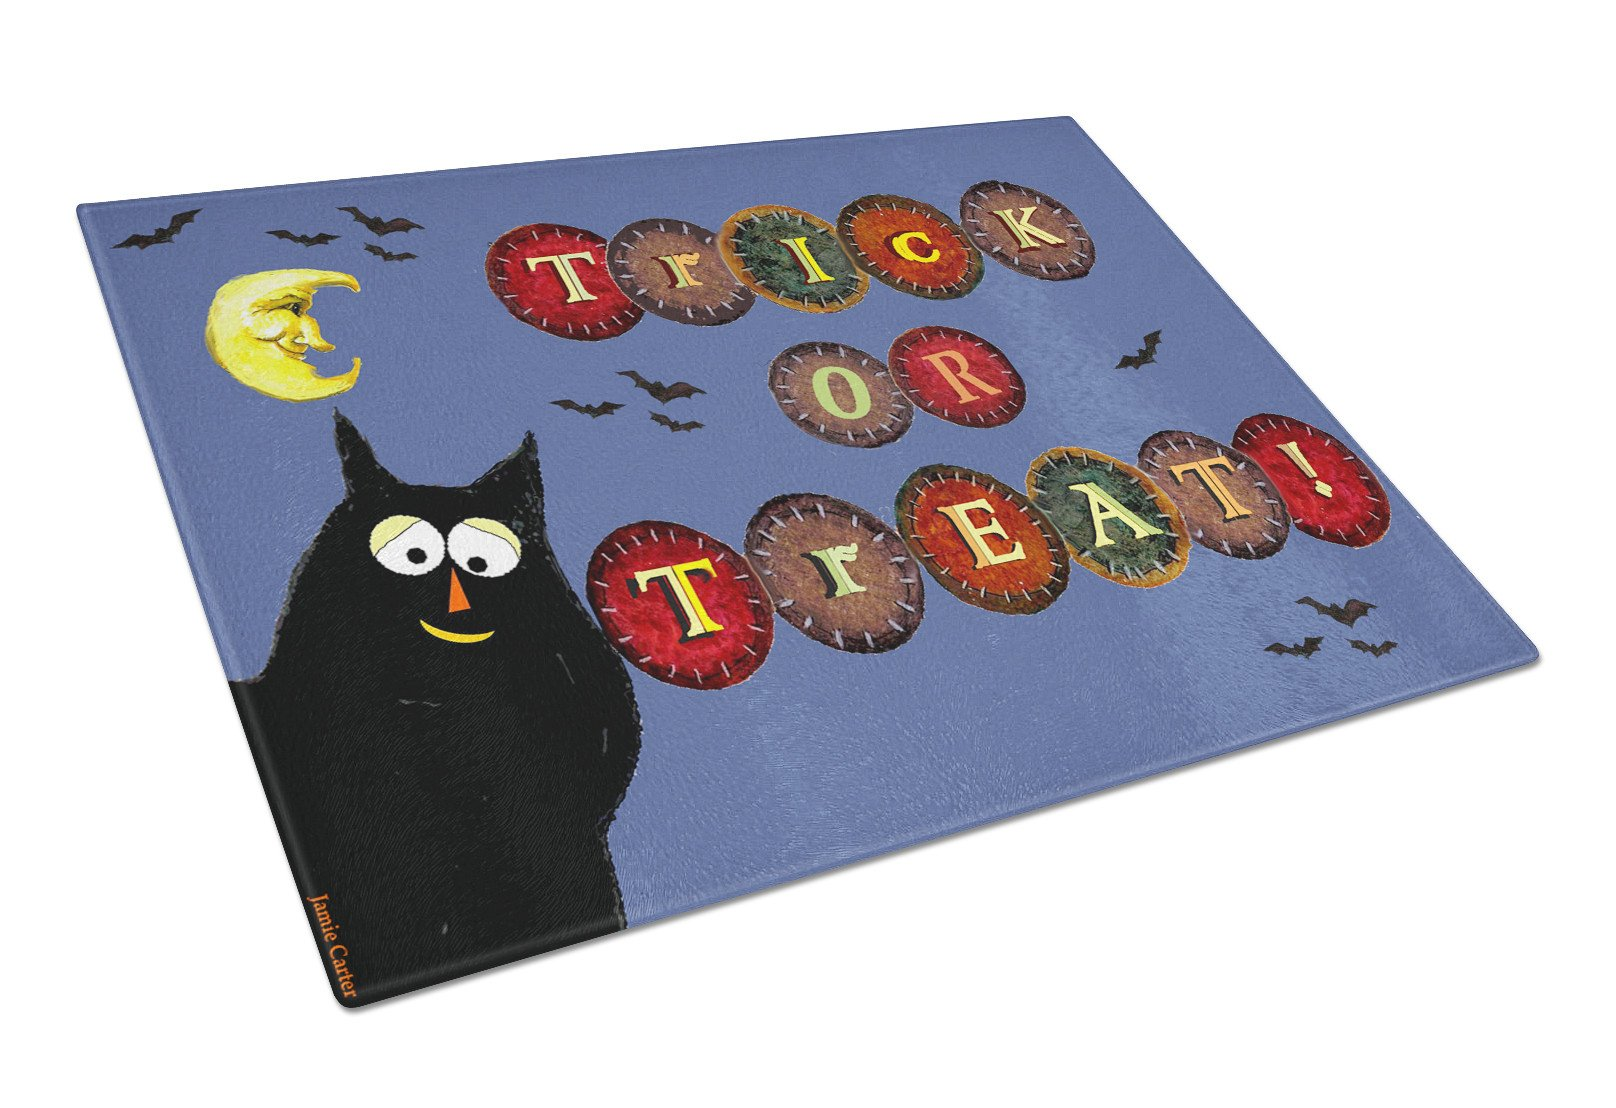 Trick or Treat Kitty Halloween Glass Cutting Board Large PJC1073LCB by Caroline's Treasures